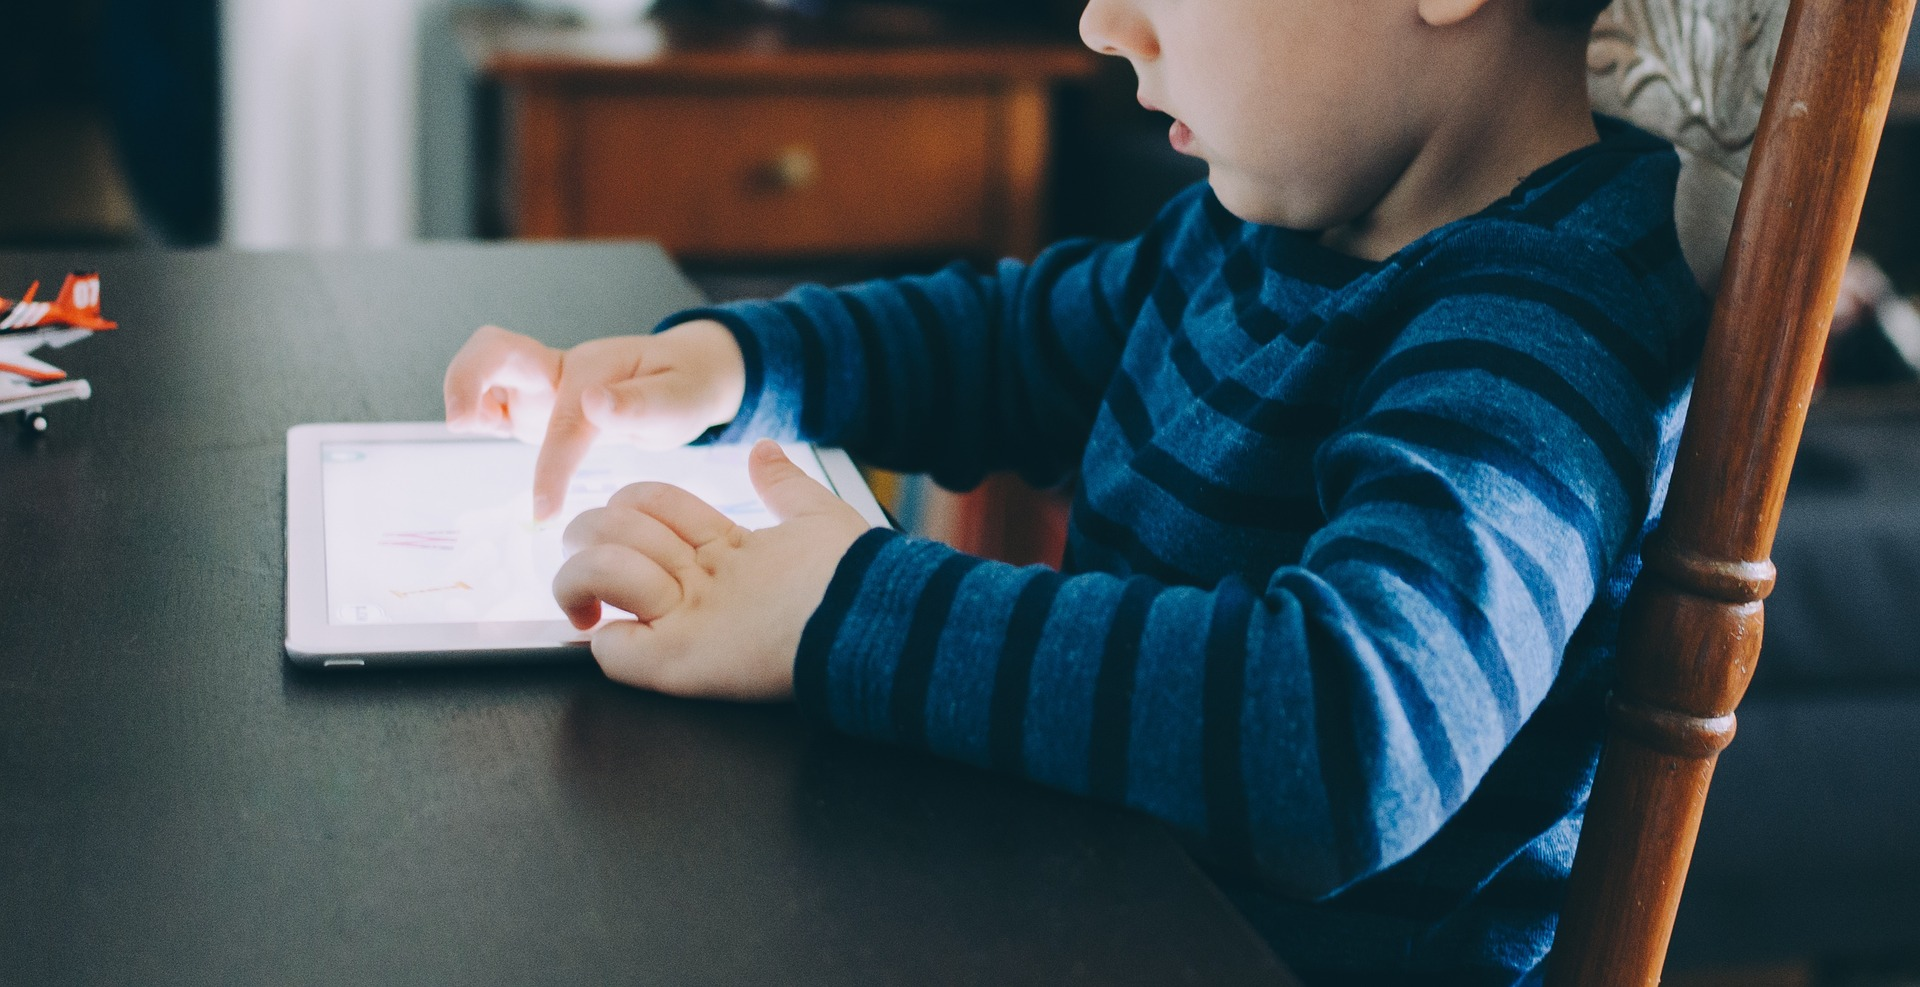 Ipad Games For Toddlers >> What To Do When Your Kid Is Addicted To Ipad Games Kidslox